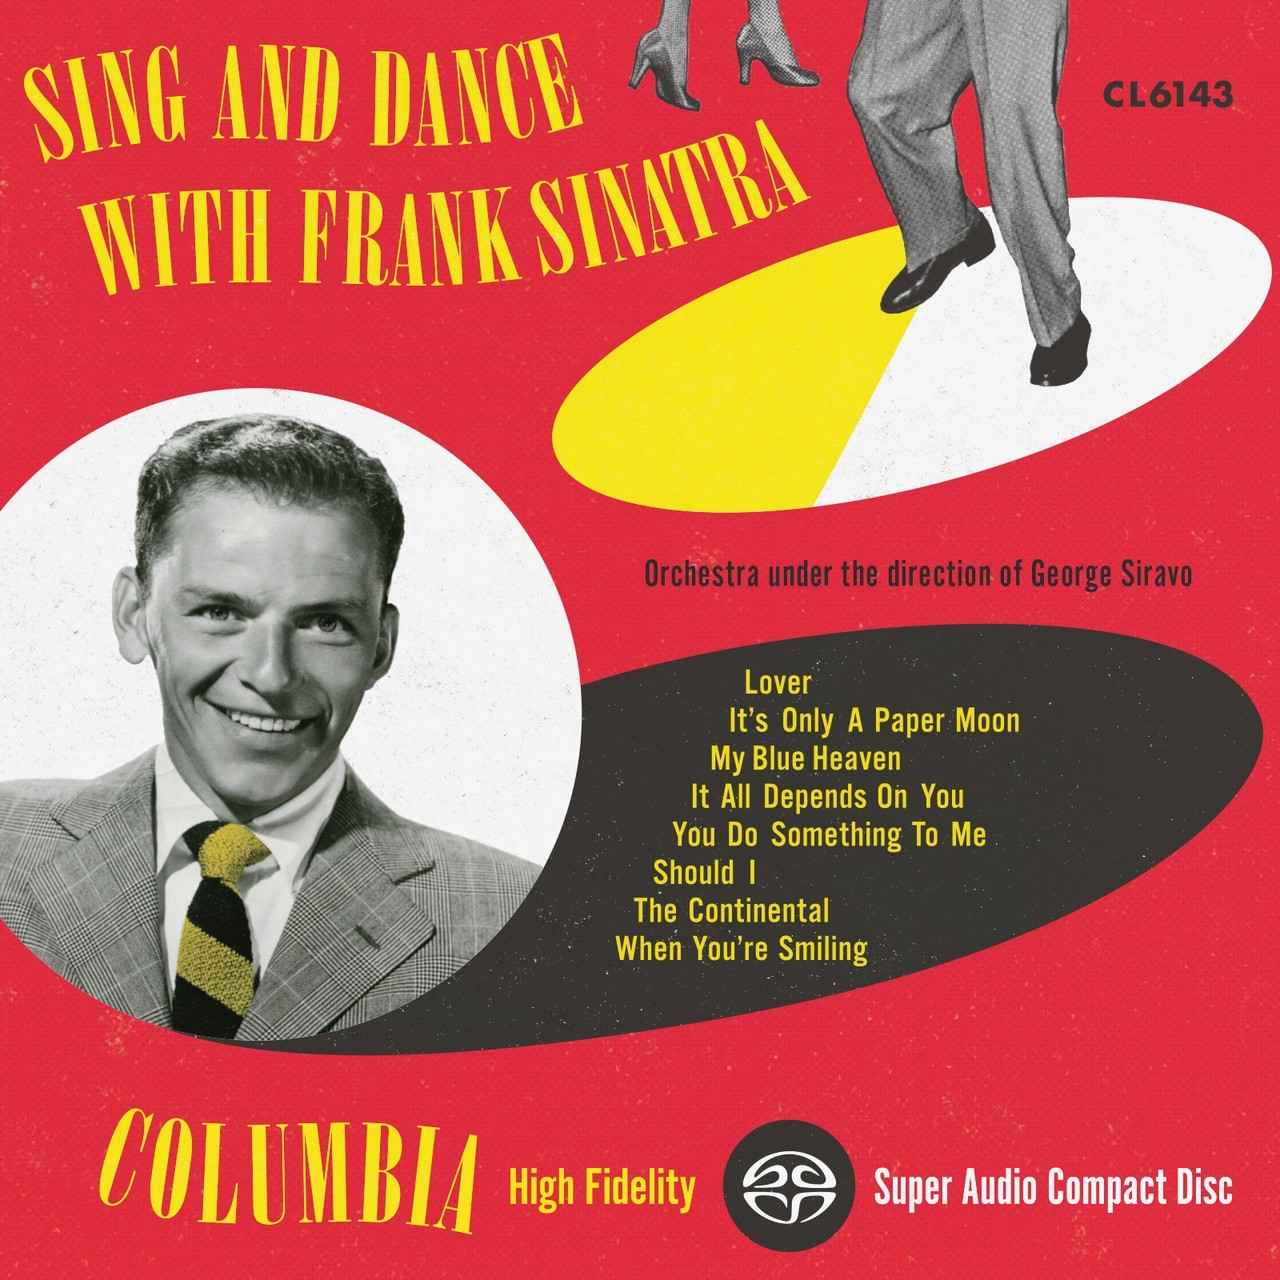 Frank Sinatra - Sing And Dance With Frank Sinatra